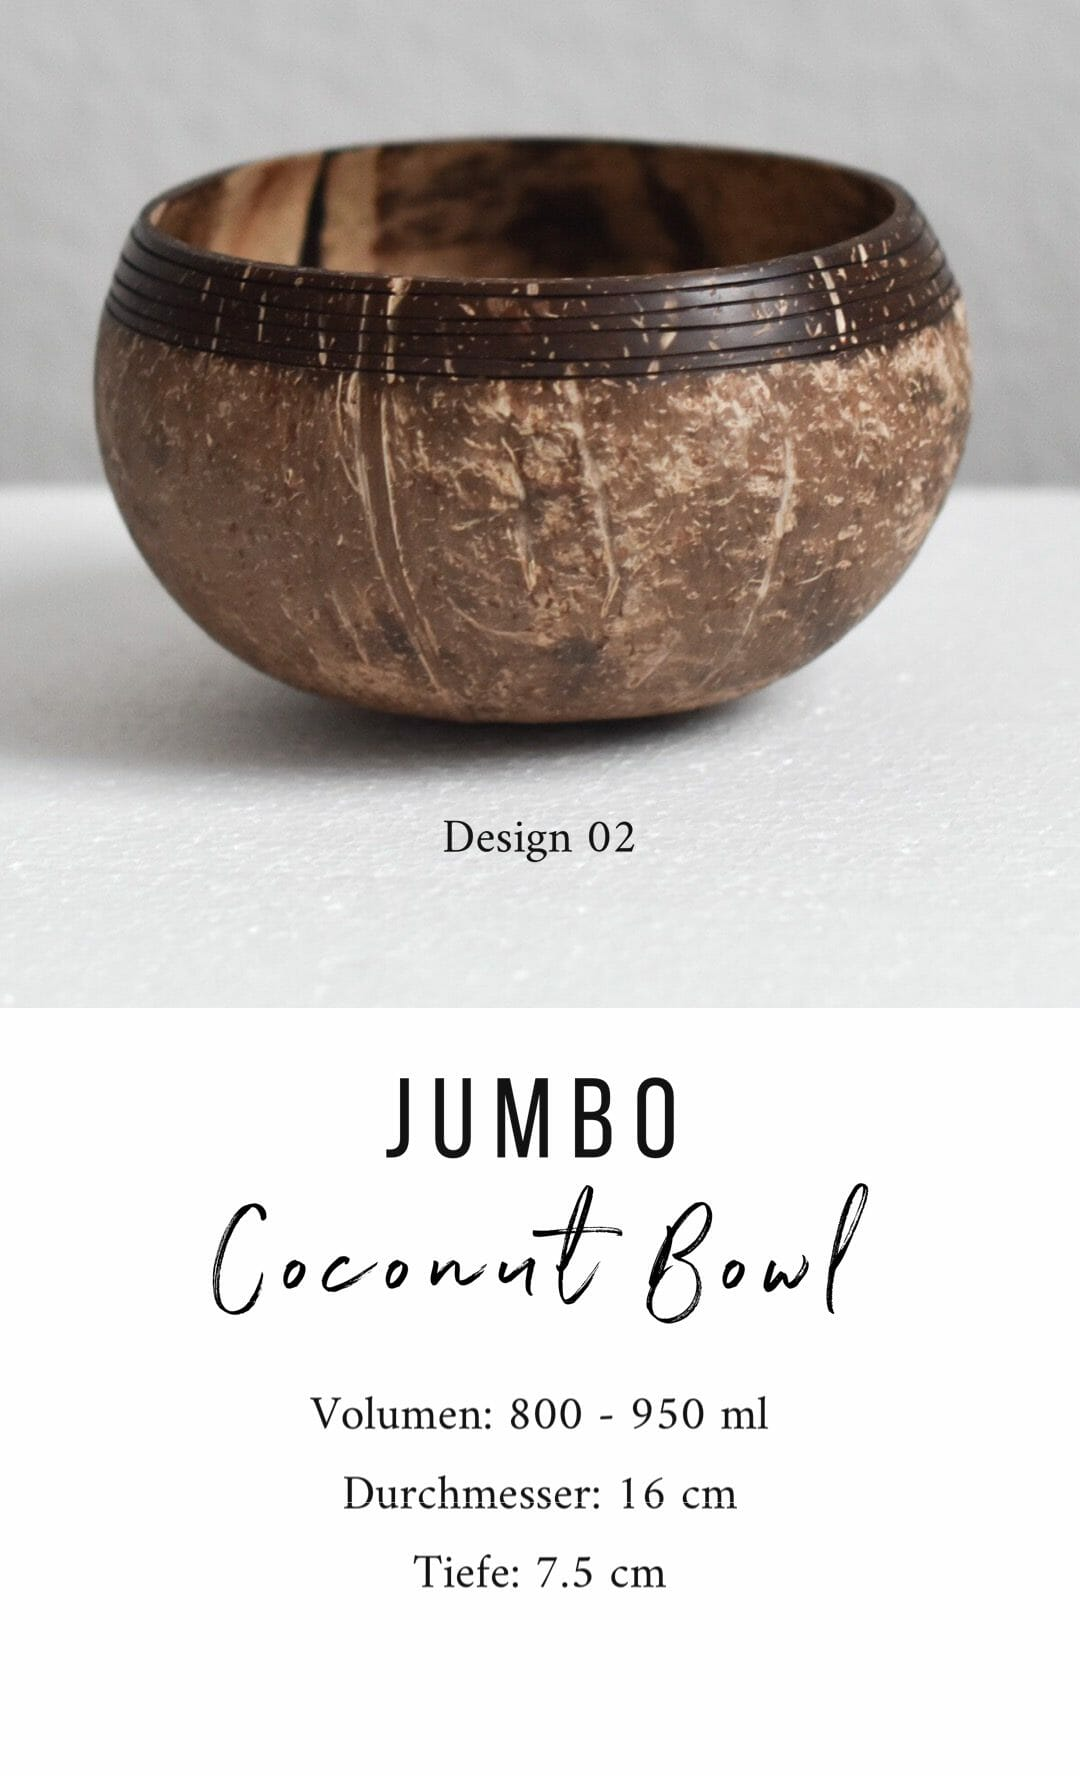 Jumbo Coconut Bowl Design 02